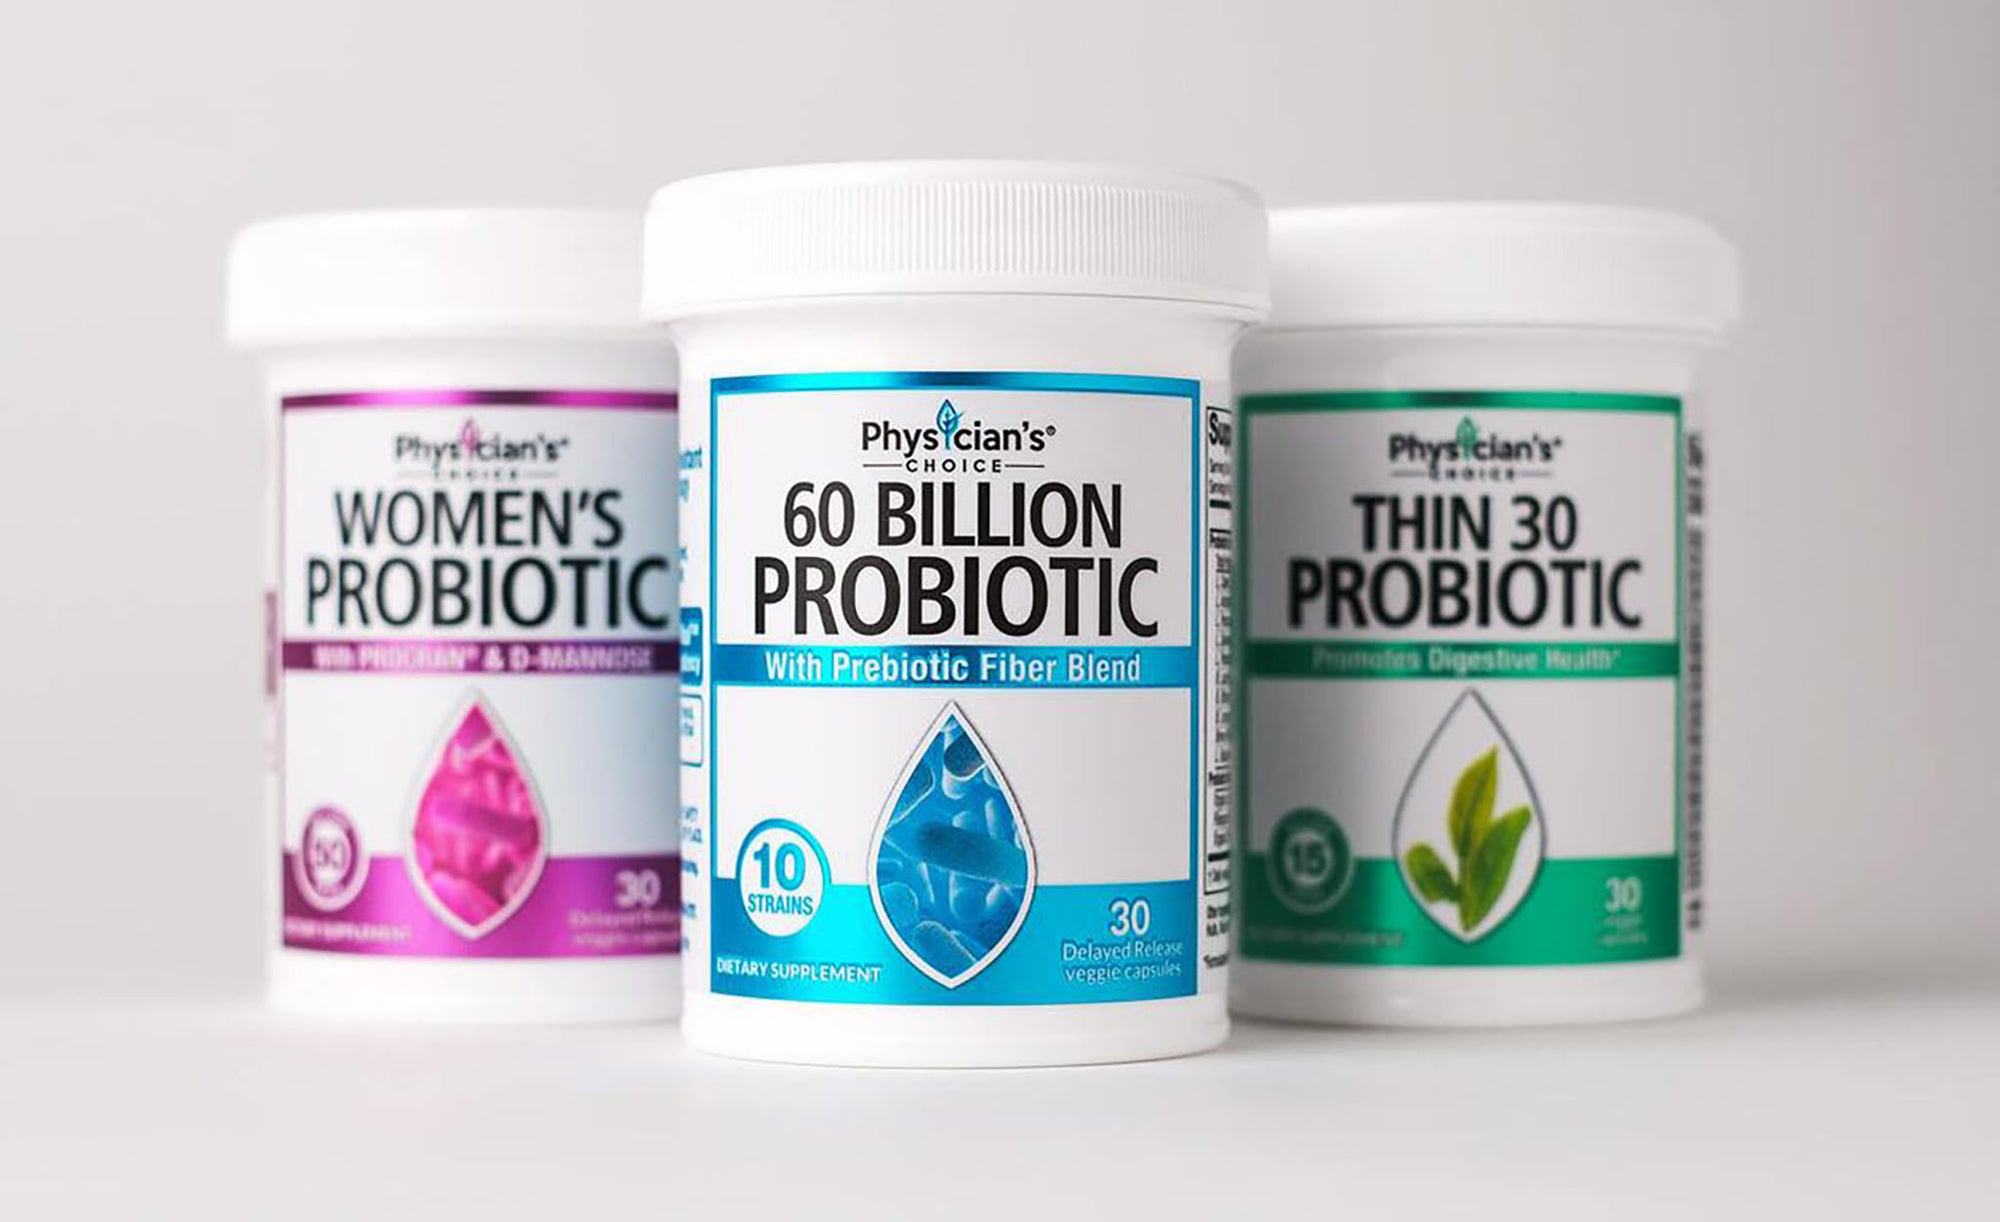 Product Spotlight: Physician's Choice Probiotic Collection